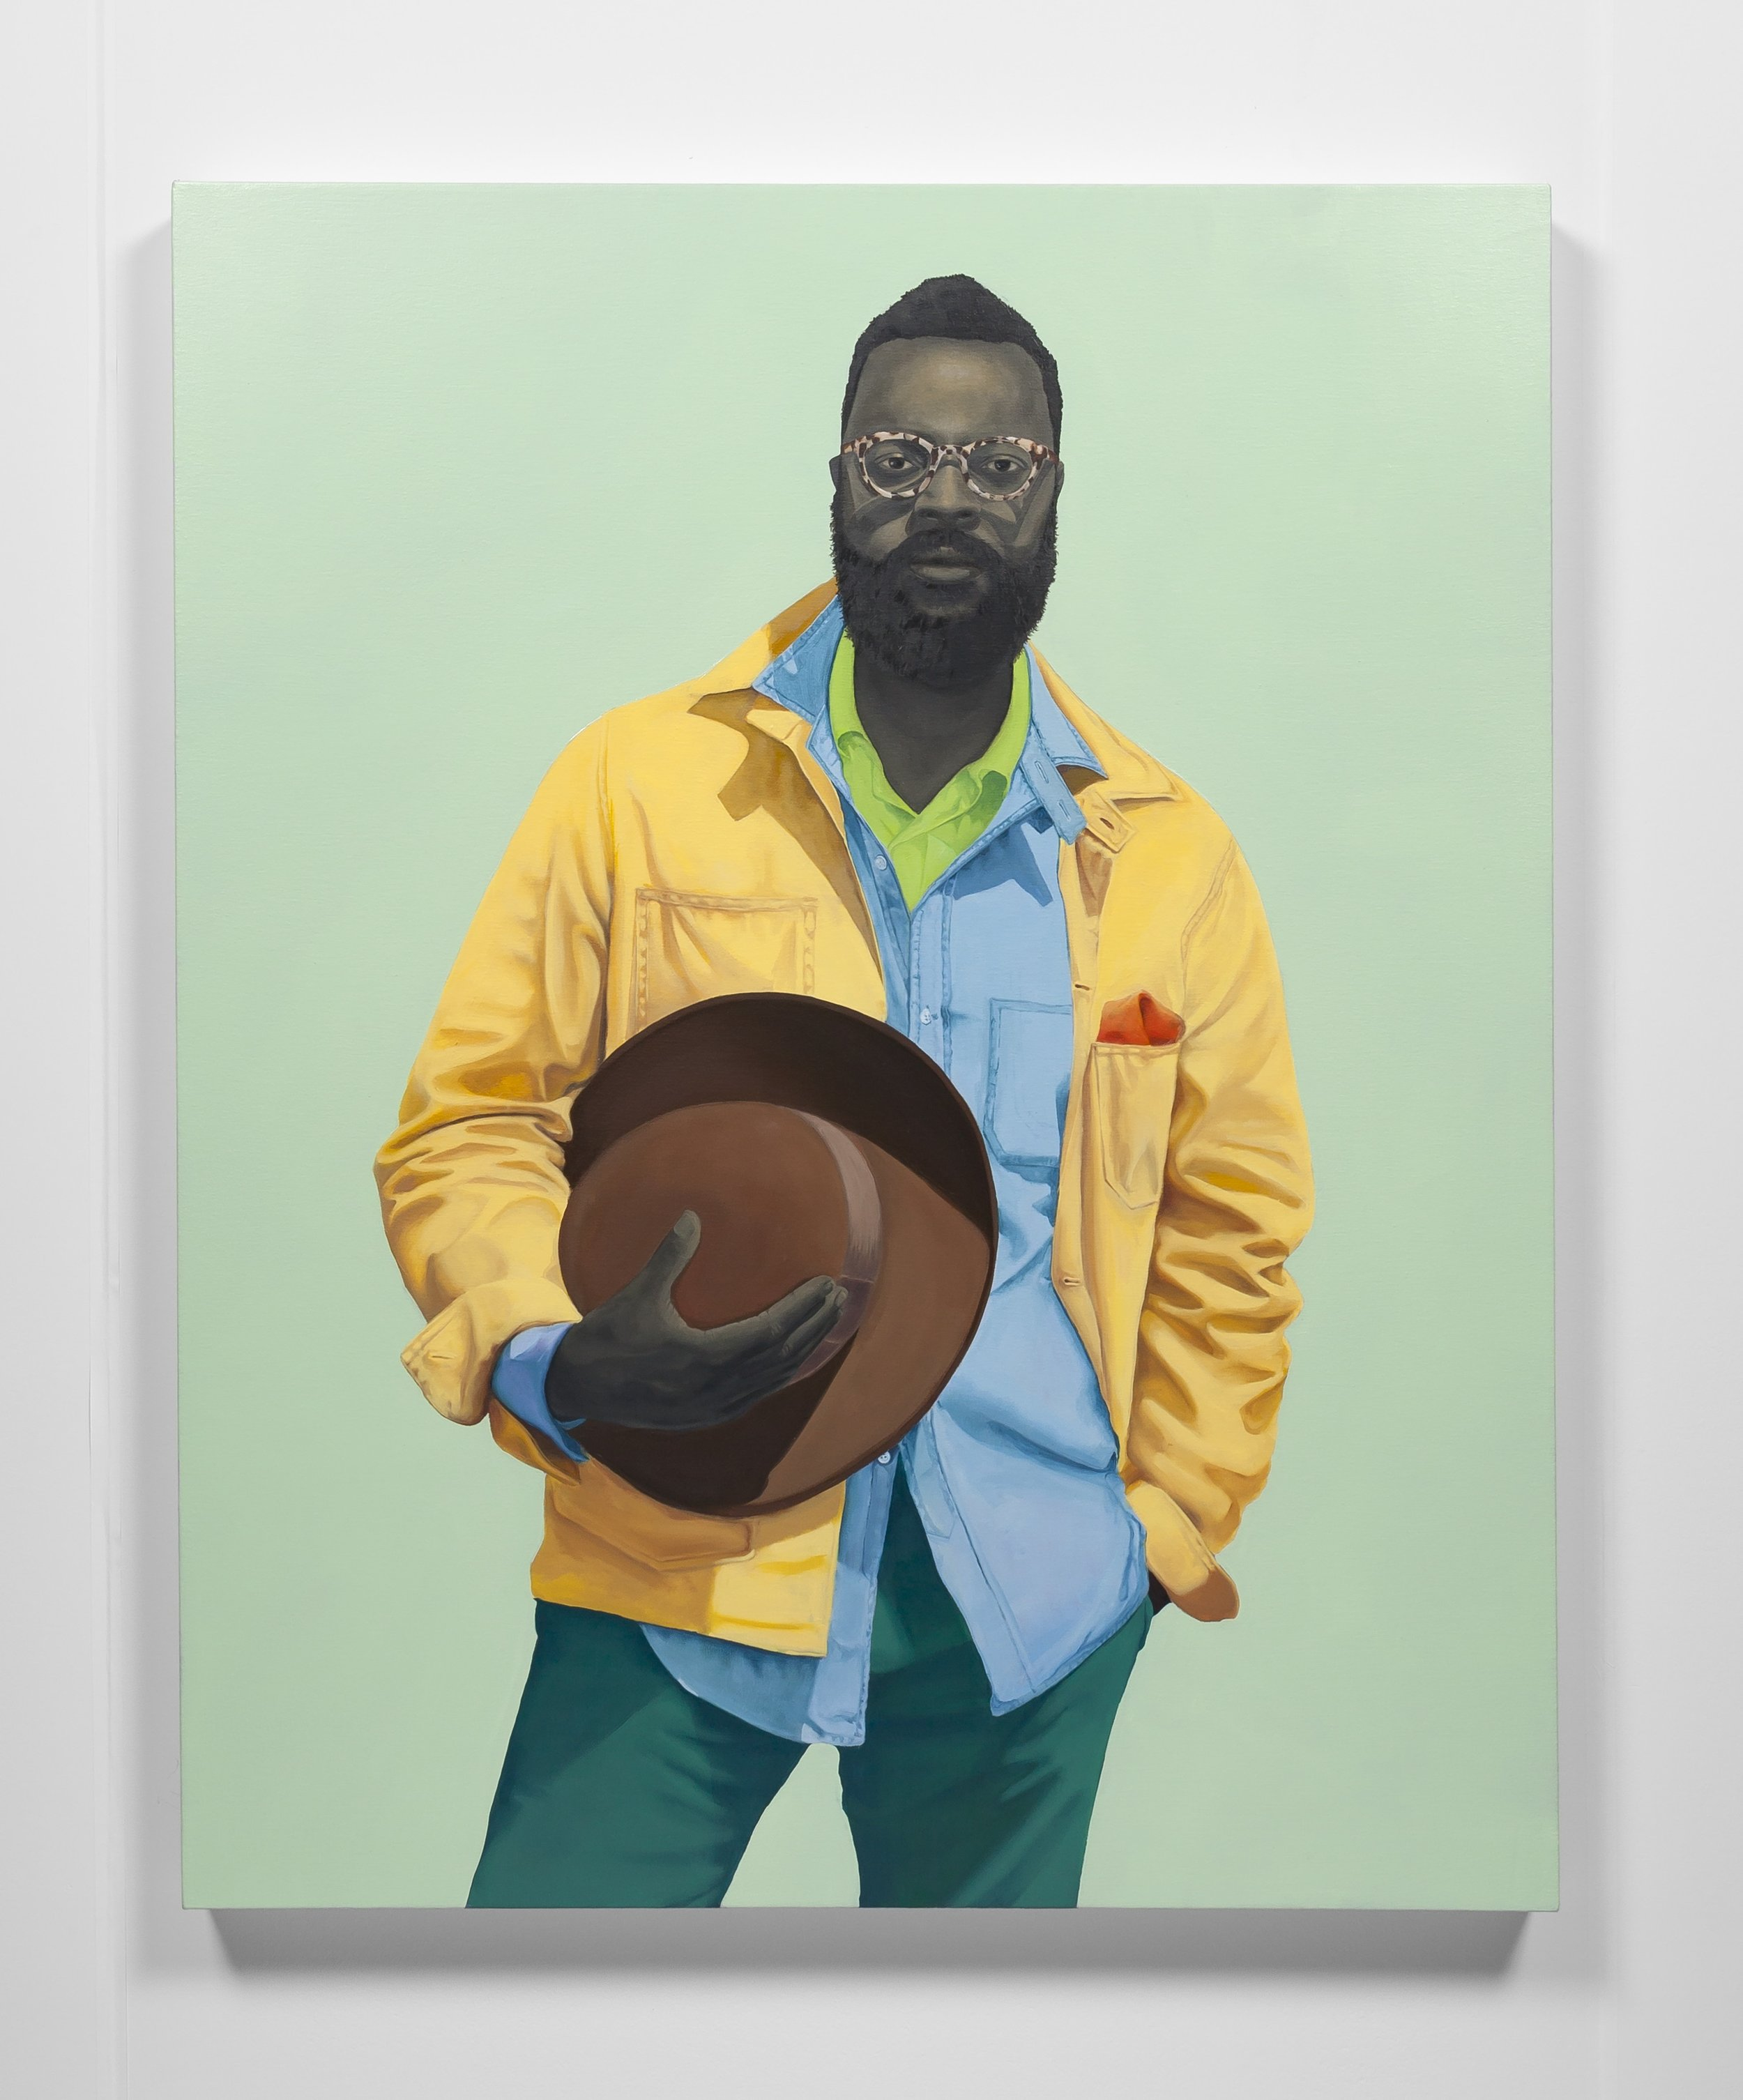 Amy Sherald, Pythagore, 2016, oil on canvas. 54 x 43 in. (137.16 x 109.22 cm). Private collection, Los Angeles, CA. Courtesy the artist and Monique Meloche Gallery, Chicago.